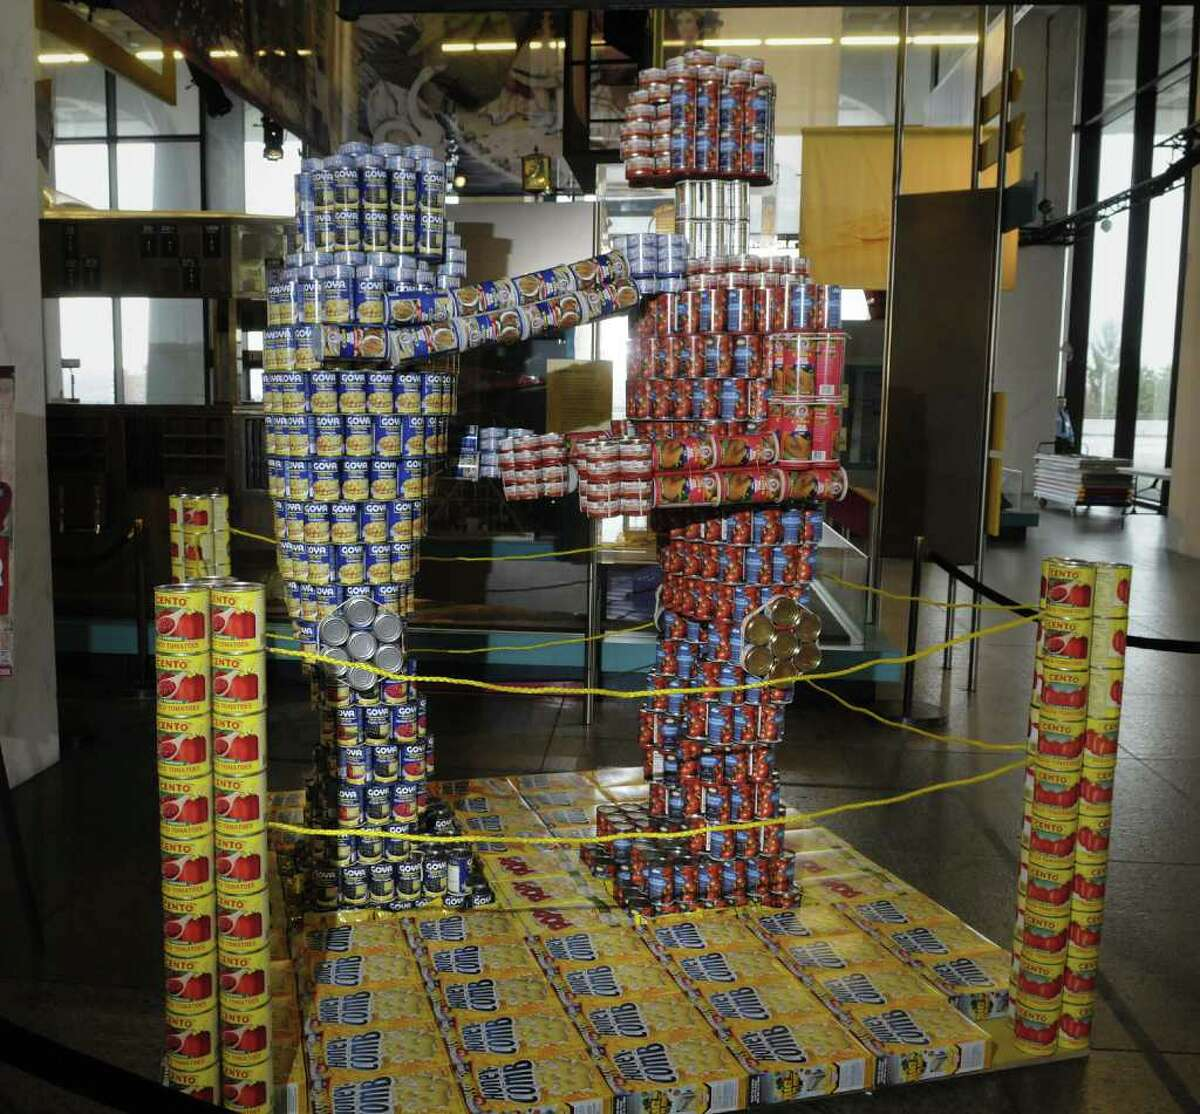 A view of the Rock' Em Sock' Em Canbots sculpture that is part of the Canstruction exhibit in the Terrace Gallery at the New York State Museum on Wednesday morning, April 13, 2011 in Albany. (Paul Buckowski / Times Union)